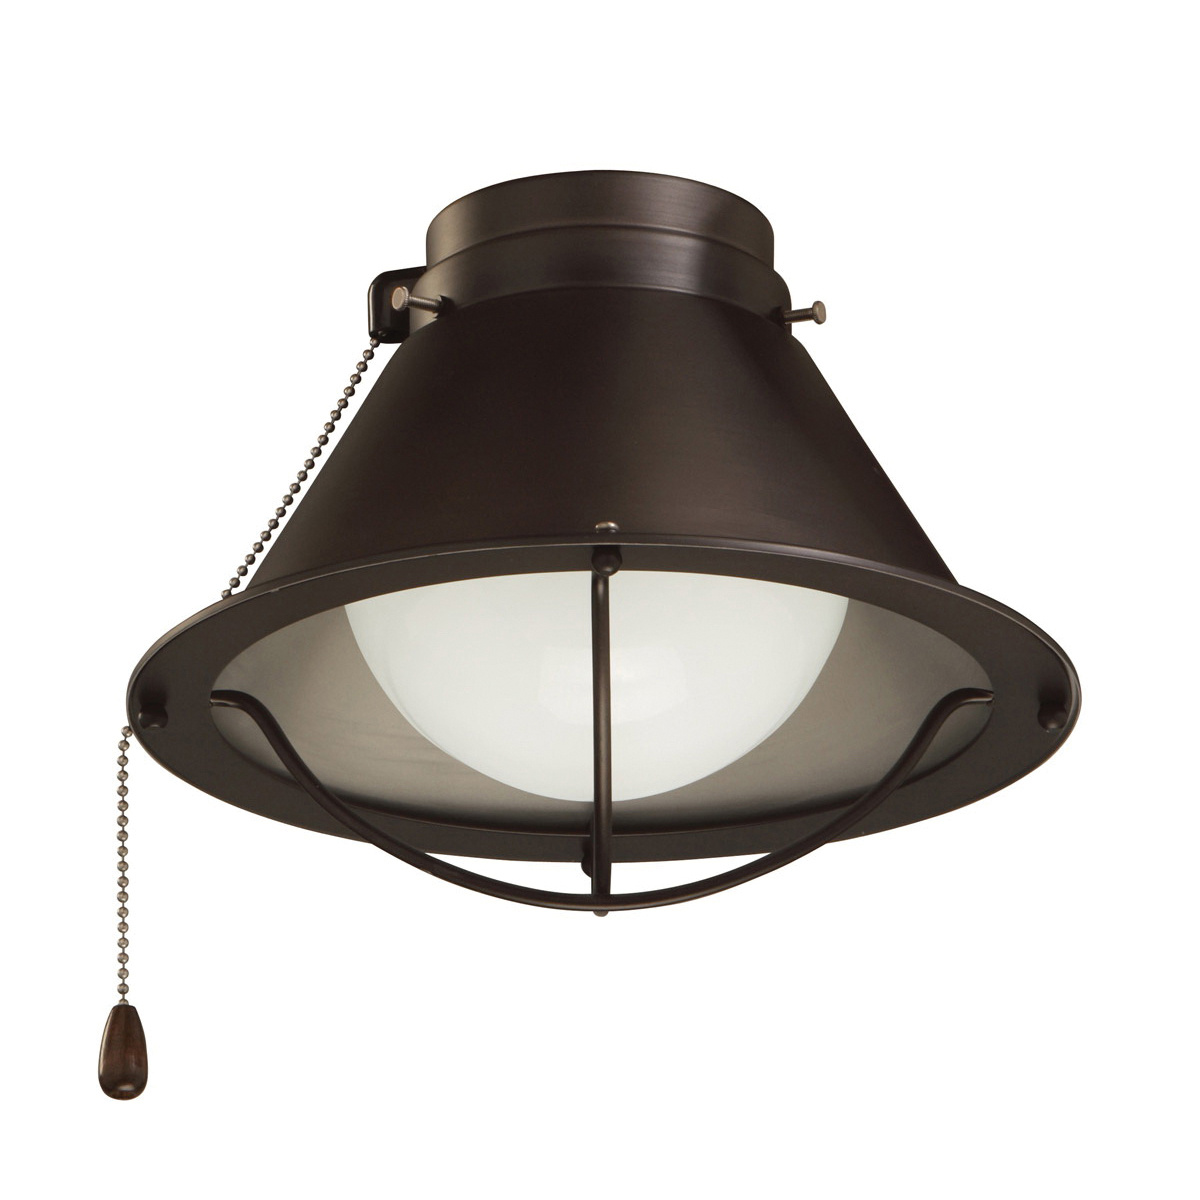 Emerson Lk46orb Cage Ceiling Fan Light Kit 1 Light 13 Watt Oil Rubbed Bronze Seaside